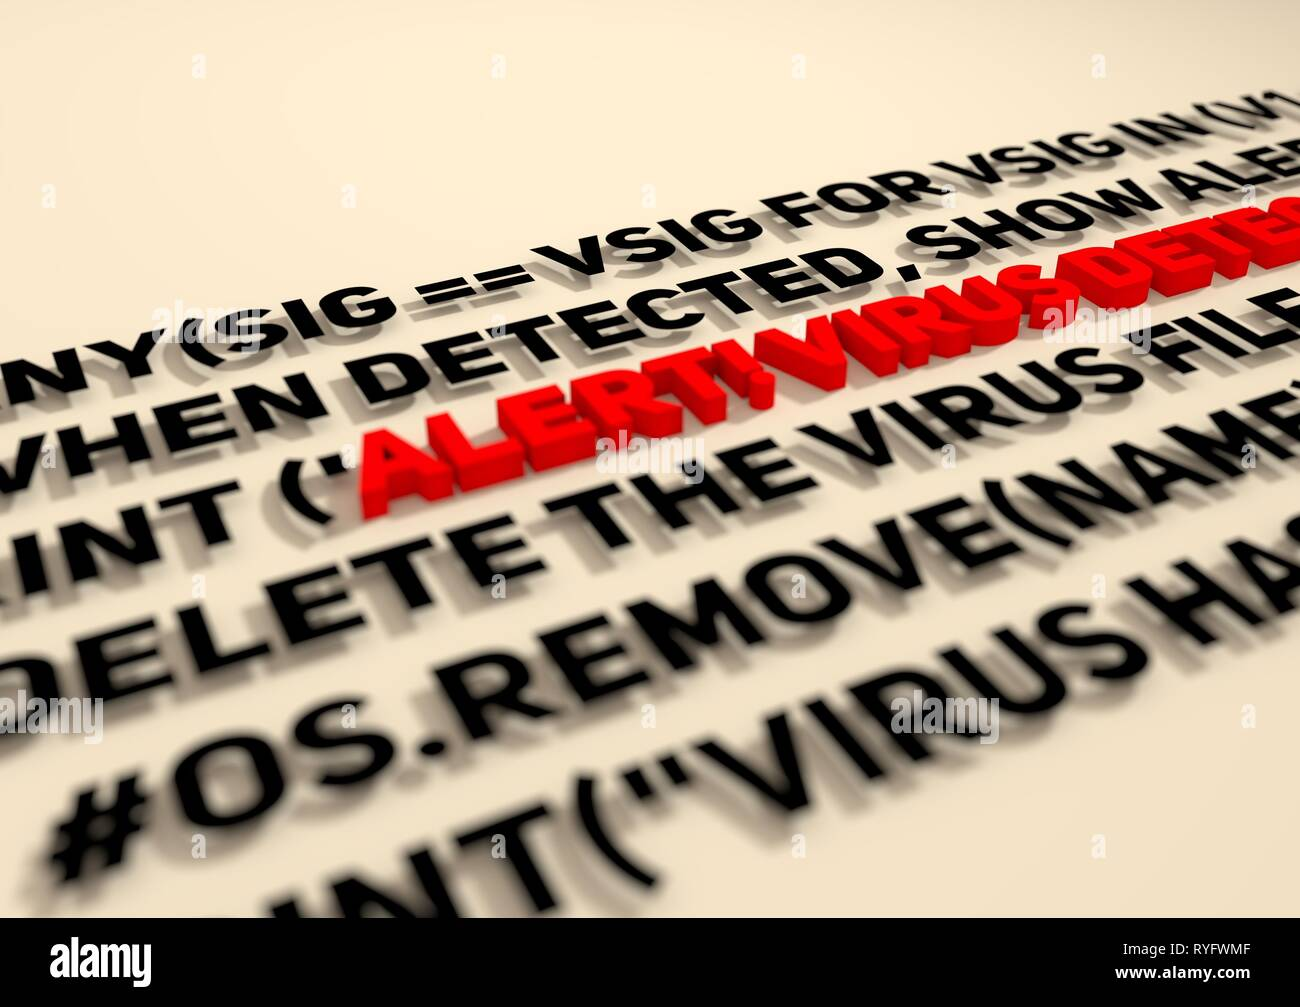 Alert  Virus detection text in computer abstract script code